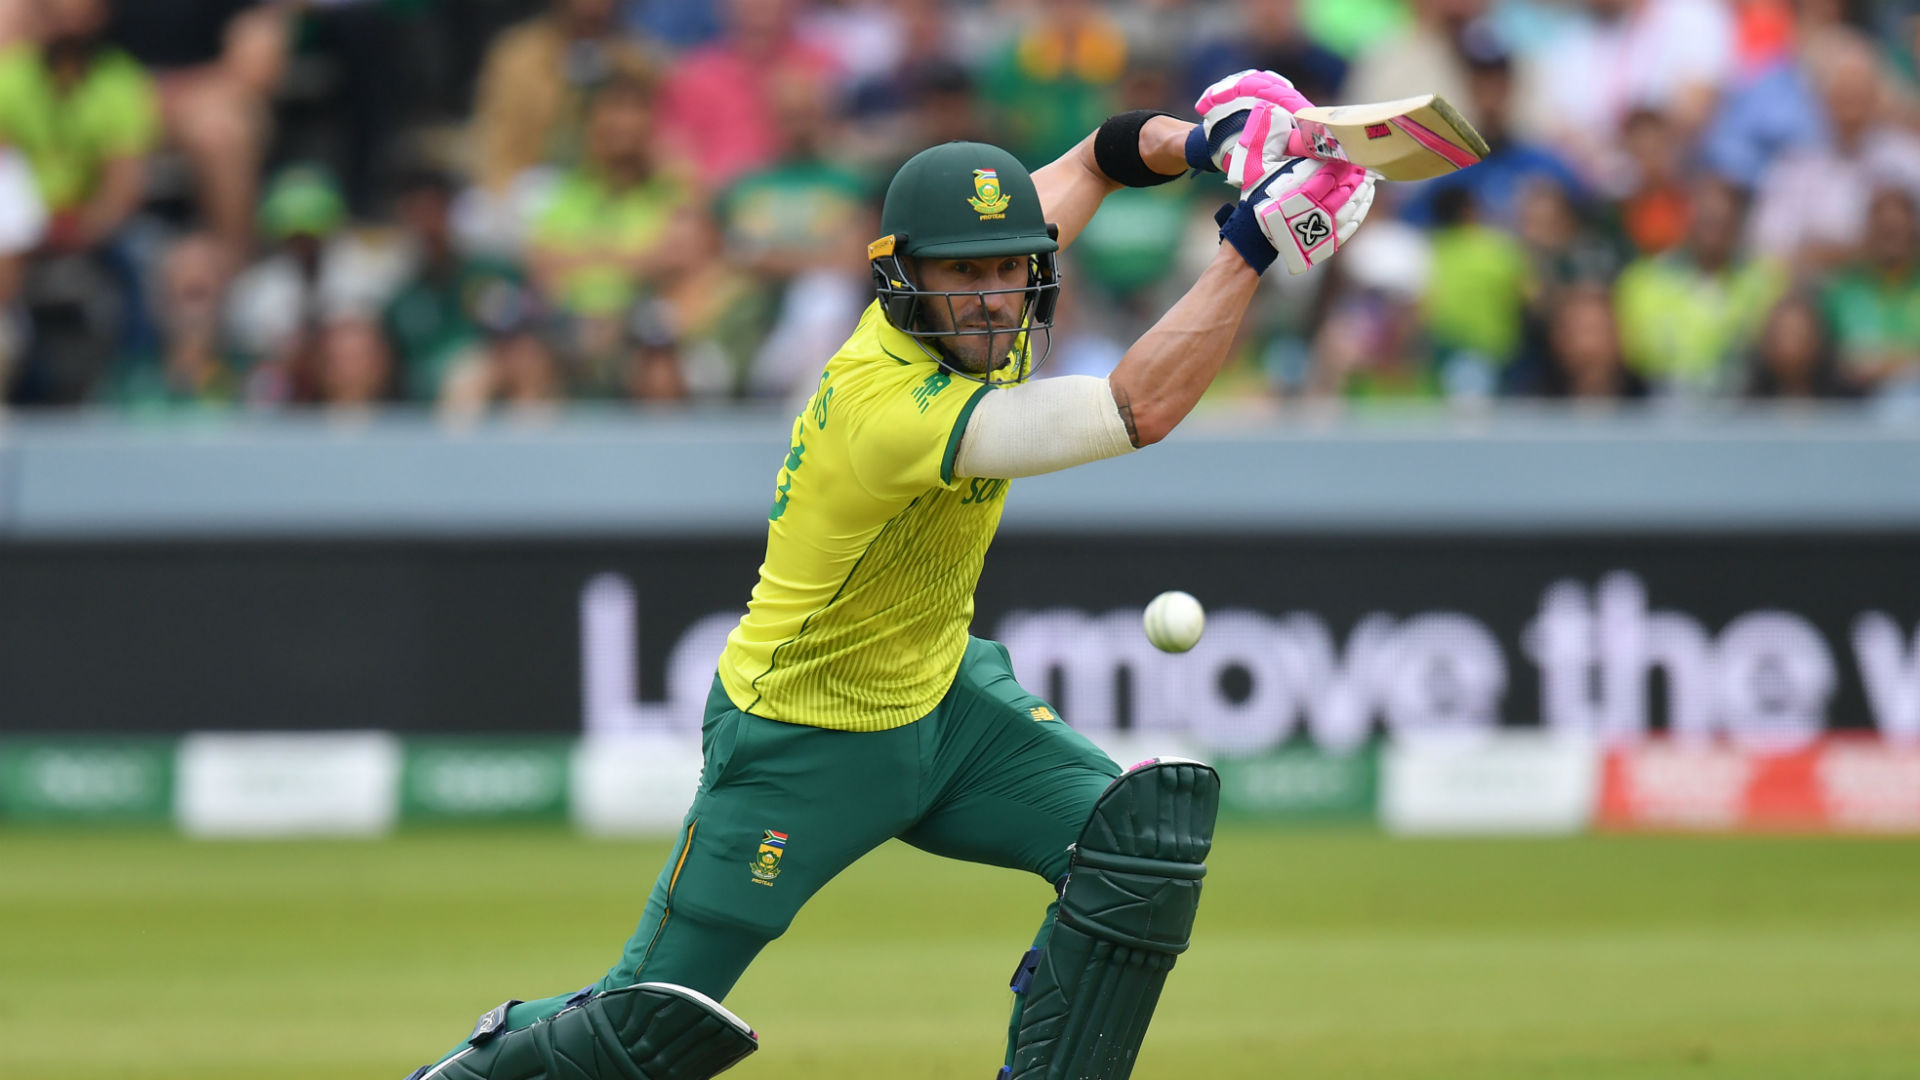 South Africa suffering confidence crisis - Du Plessis